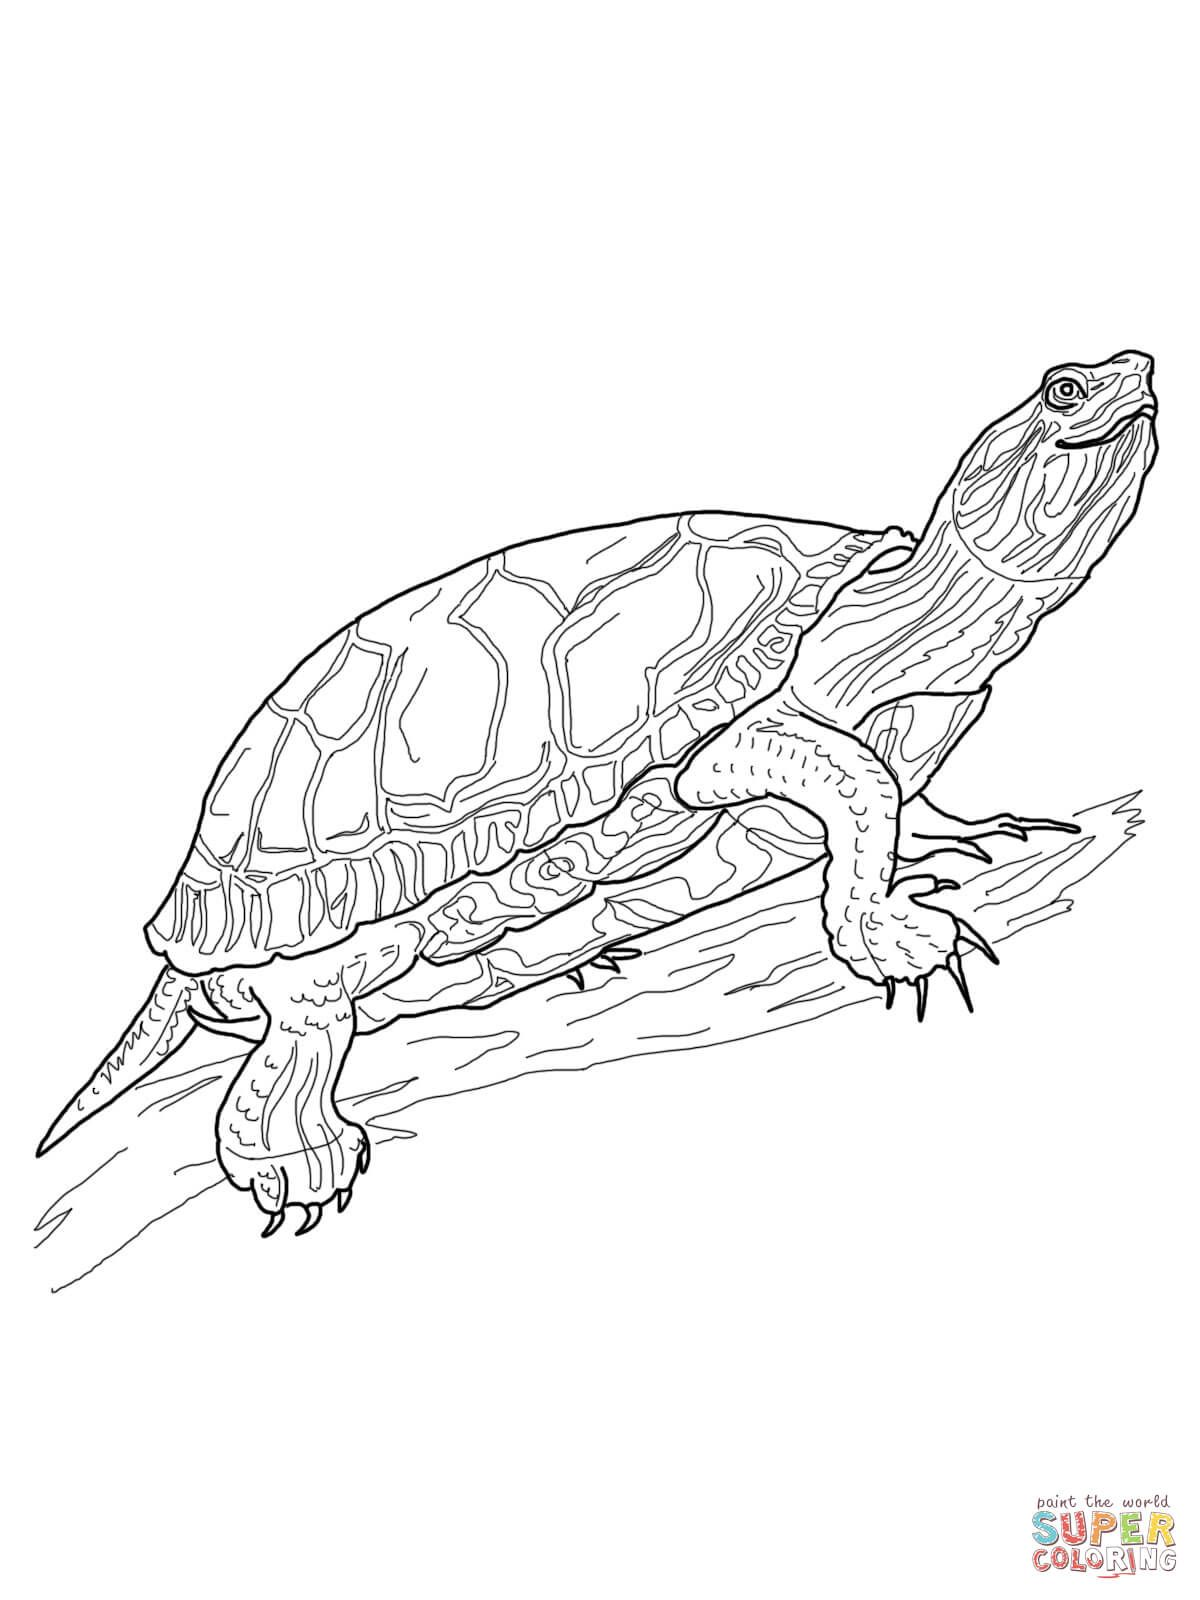 Pin By Elsie Darnell On Turtle Tattoo Ideas Turtle Painting Western Painted Turtle Turtle Coloring Pages